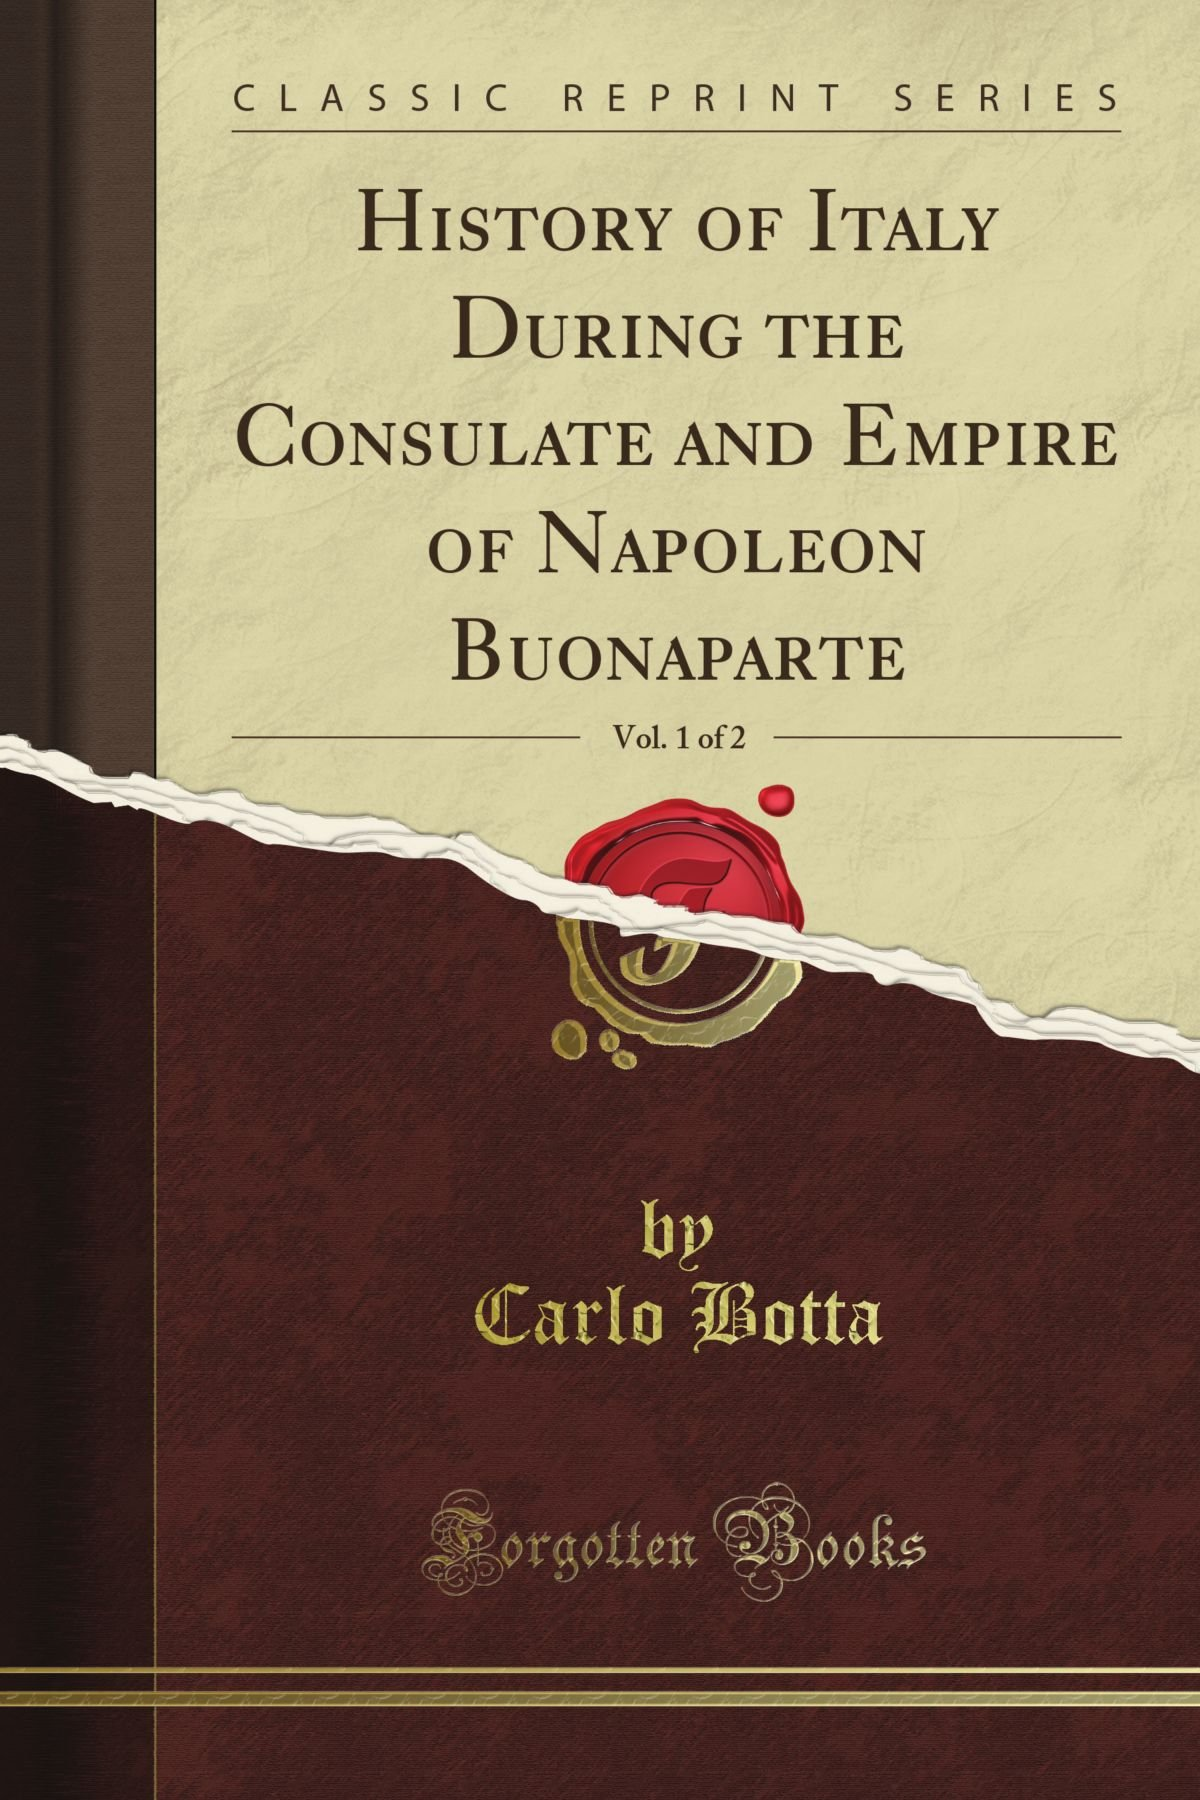 Read Online History of Italy During the Consulate and Empire of Napoleon Buonaparte, Vol. 1 of 2 (Classic Reprint) ebook